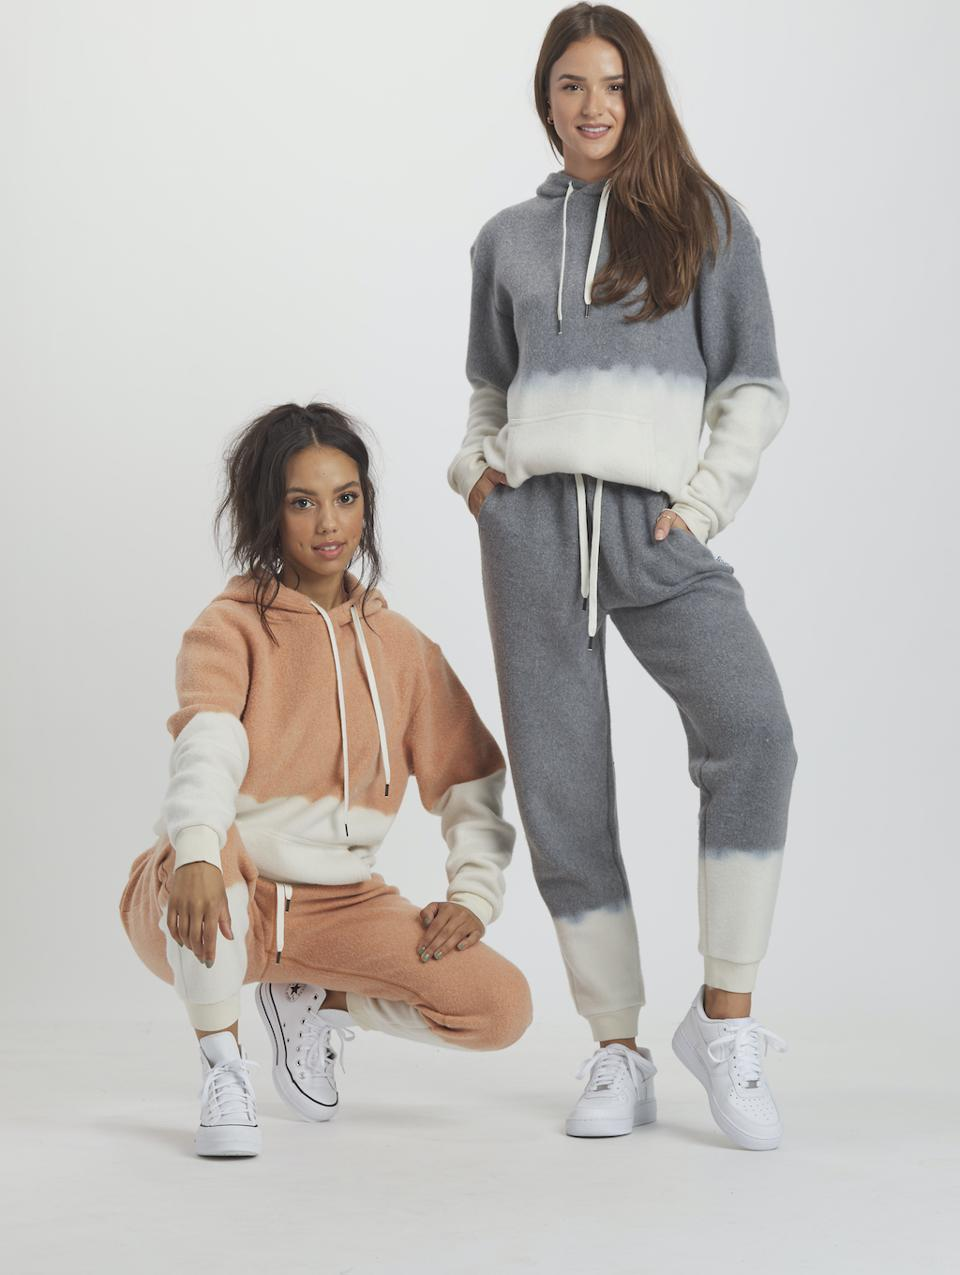 FEAT x Helen Owen BlanketBlend hoodie and jogger set. Made with FEAT's proprietary tri-blend mid weight fabric, it combines the comfort of cotton with the performance features of polyester finished with a rare yarn & ButterWash process to create a super soft set. Dip-dye design inspiration by Helen Owen. Available in Spice and Shadow.